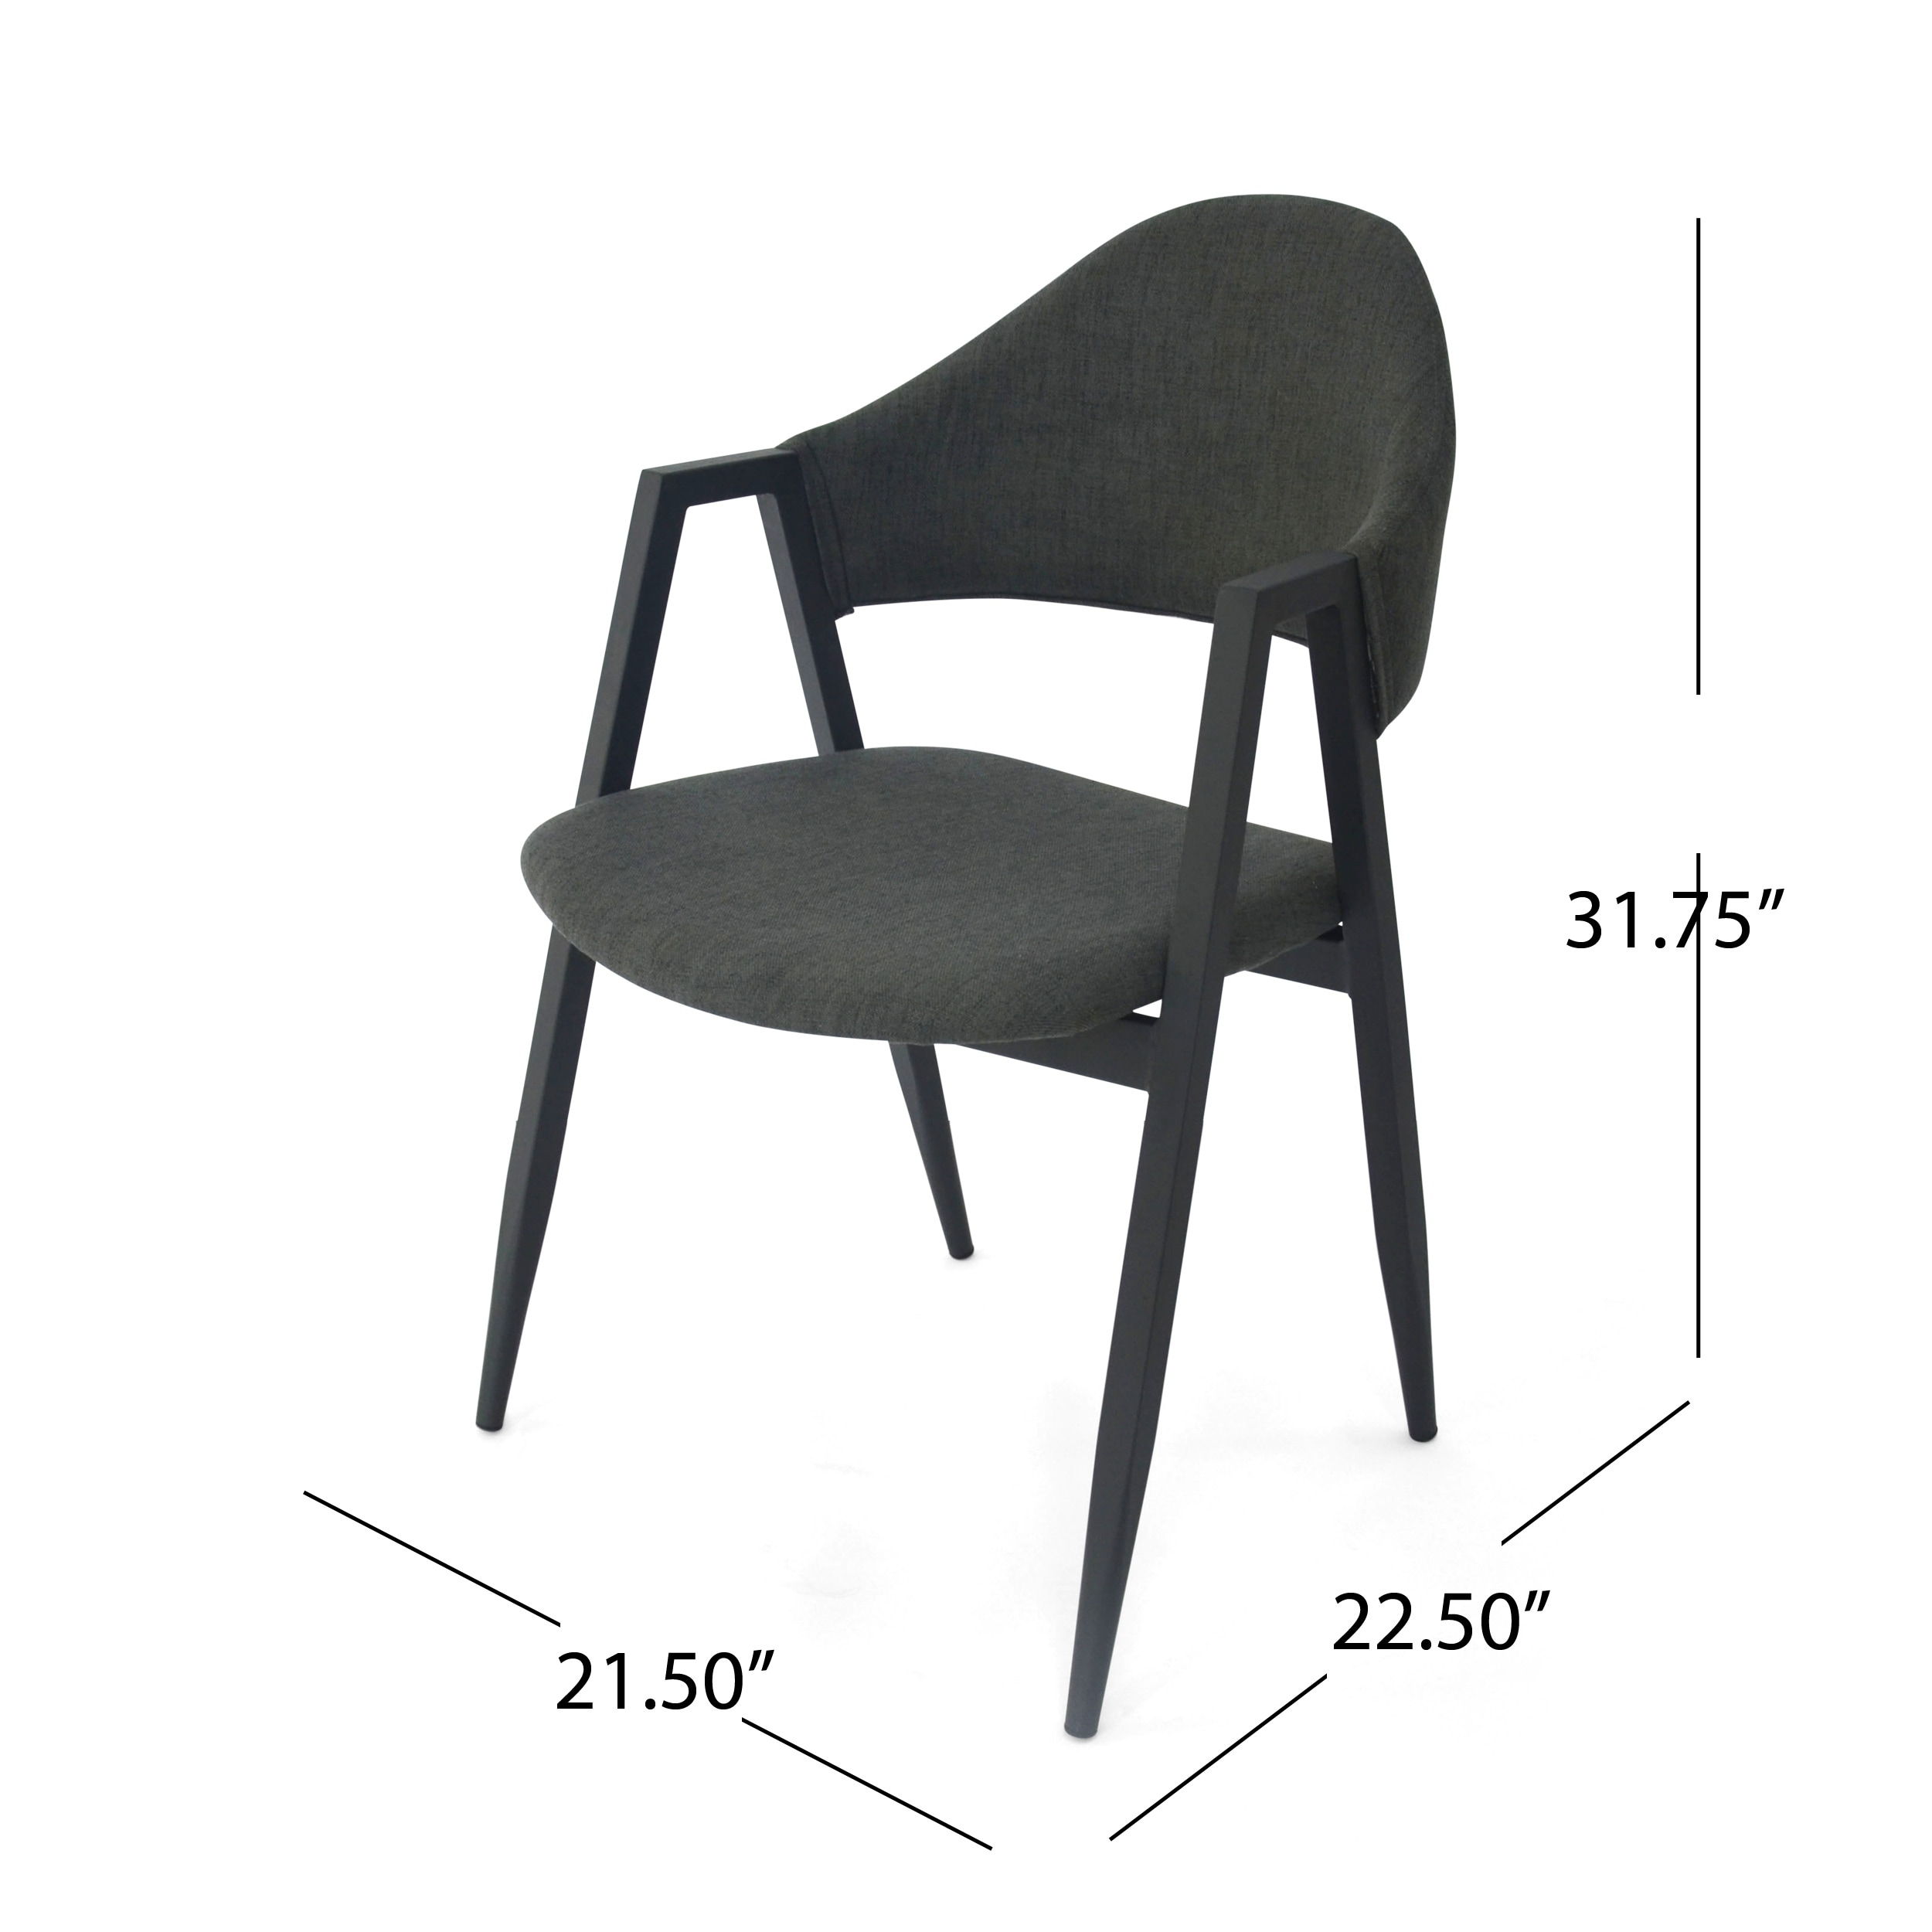 Elmhurst Mid Century Modern Iron Legs Open Back Dining Chairs By Christopher Knight Home On Free Shipping Today 23178224